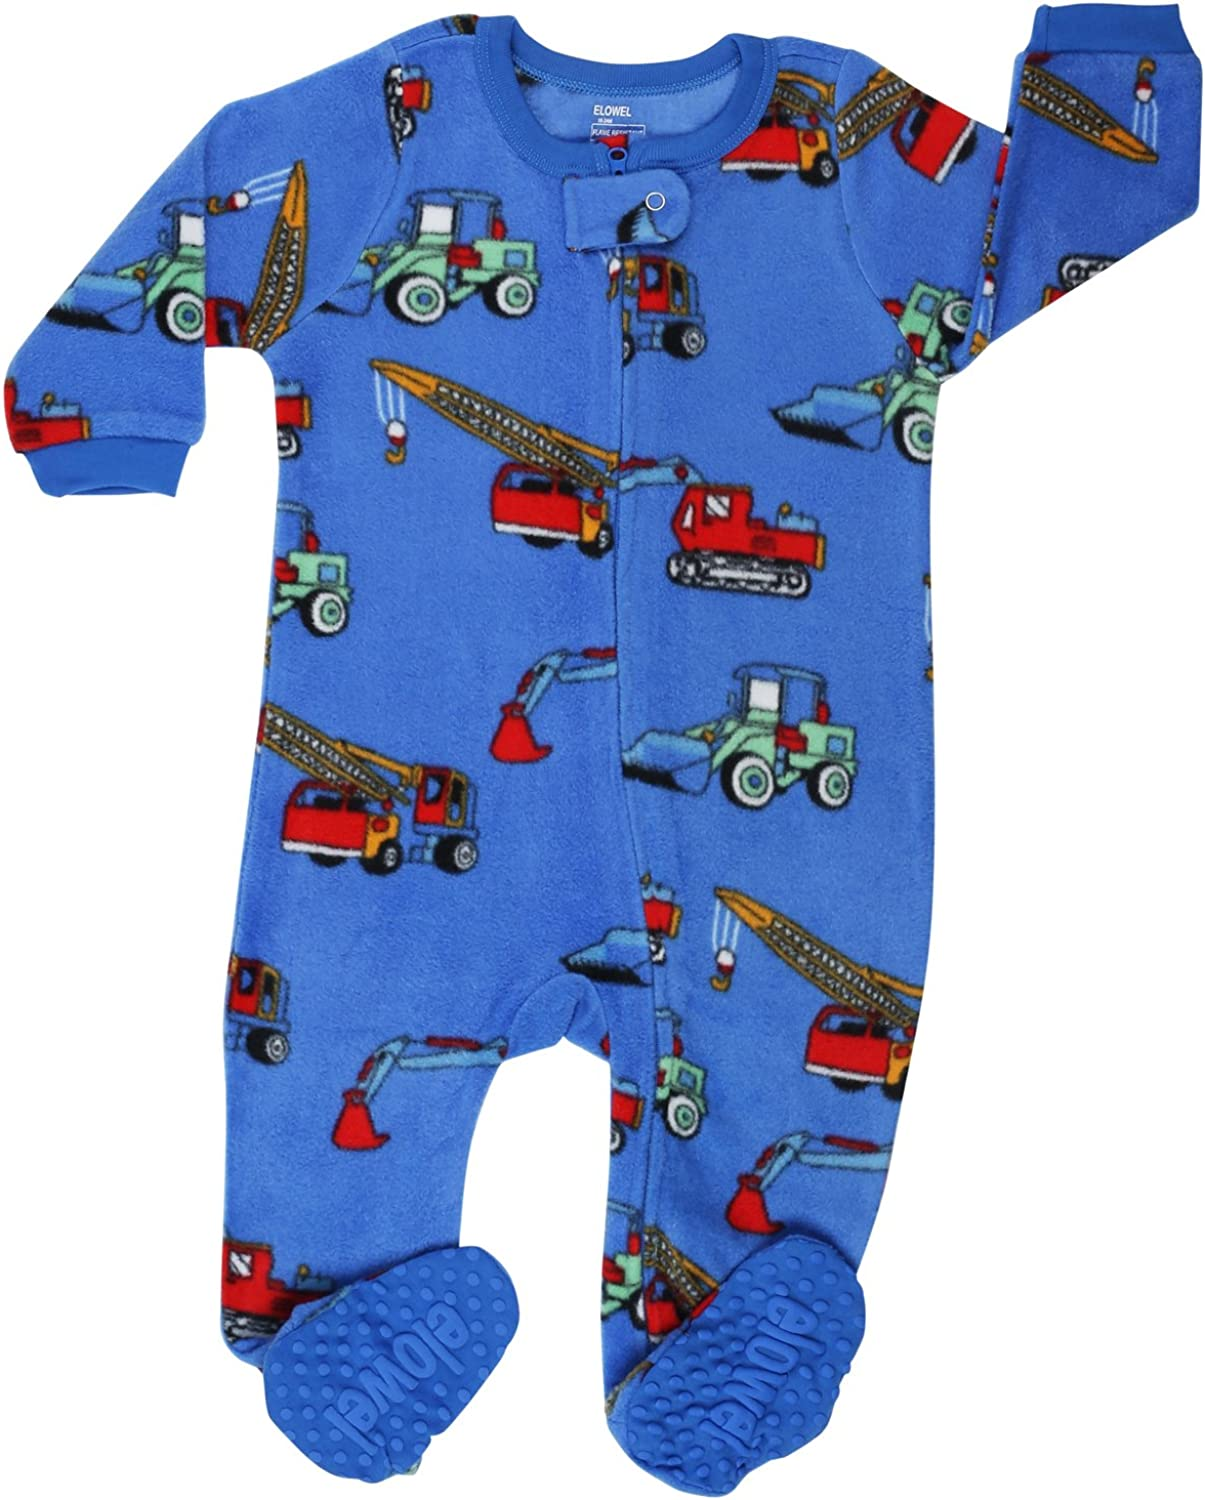 1 Piece Boys Pyjama 5y 100/% Polyester elowel Onseie Toddler Footed Pyjama Warm Fleece Sleapwear Multiple Colours /& Designs Avalibale Little Boys Sizes: 6m Nightwear for Baby